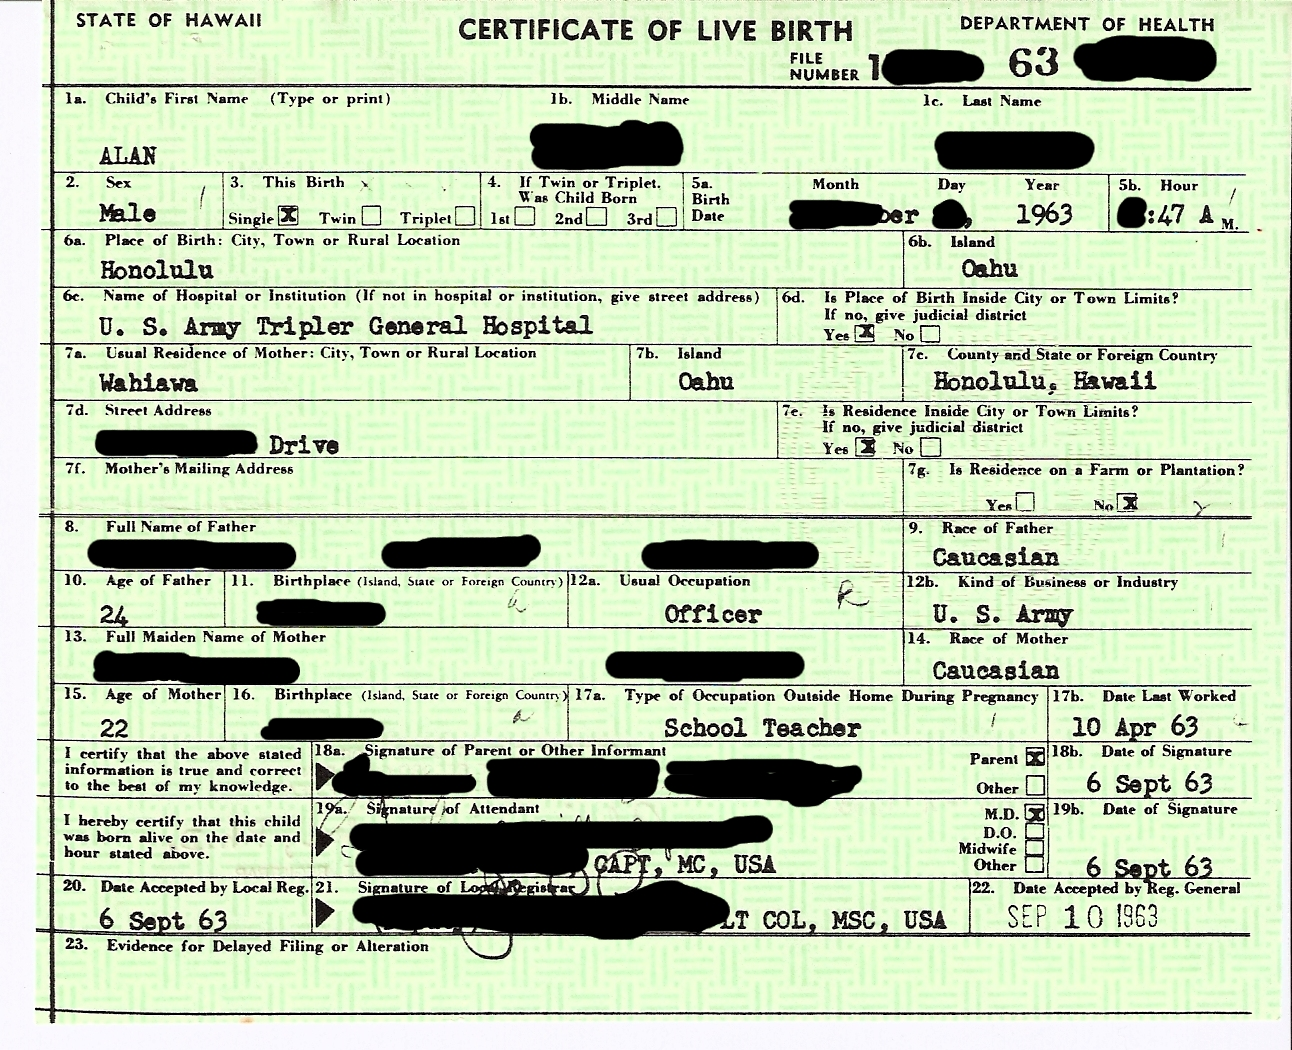 https://i1.wp.com/snarkybytes.com/wp-content/uploads/2008/06/hawaii-birth-certificate-1963.jpg